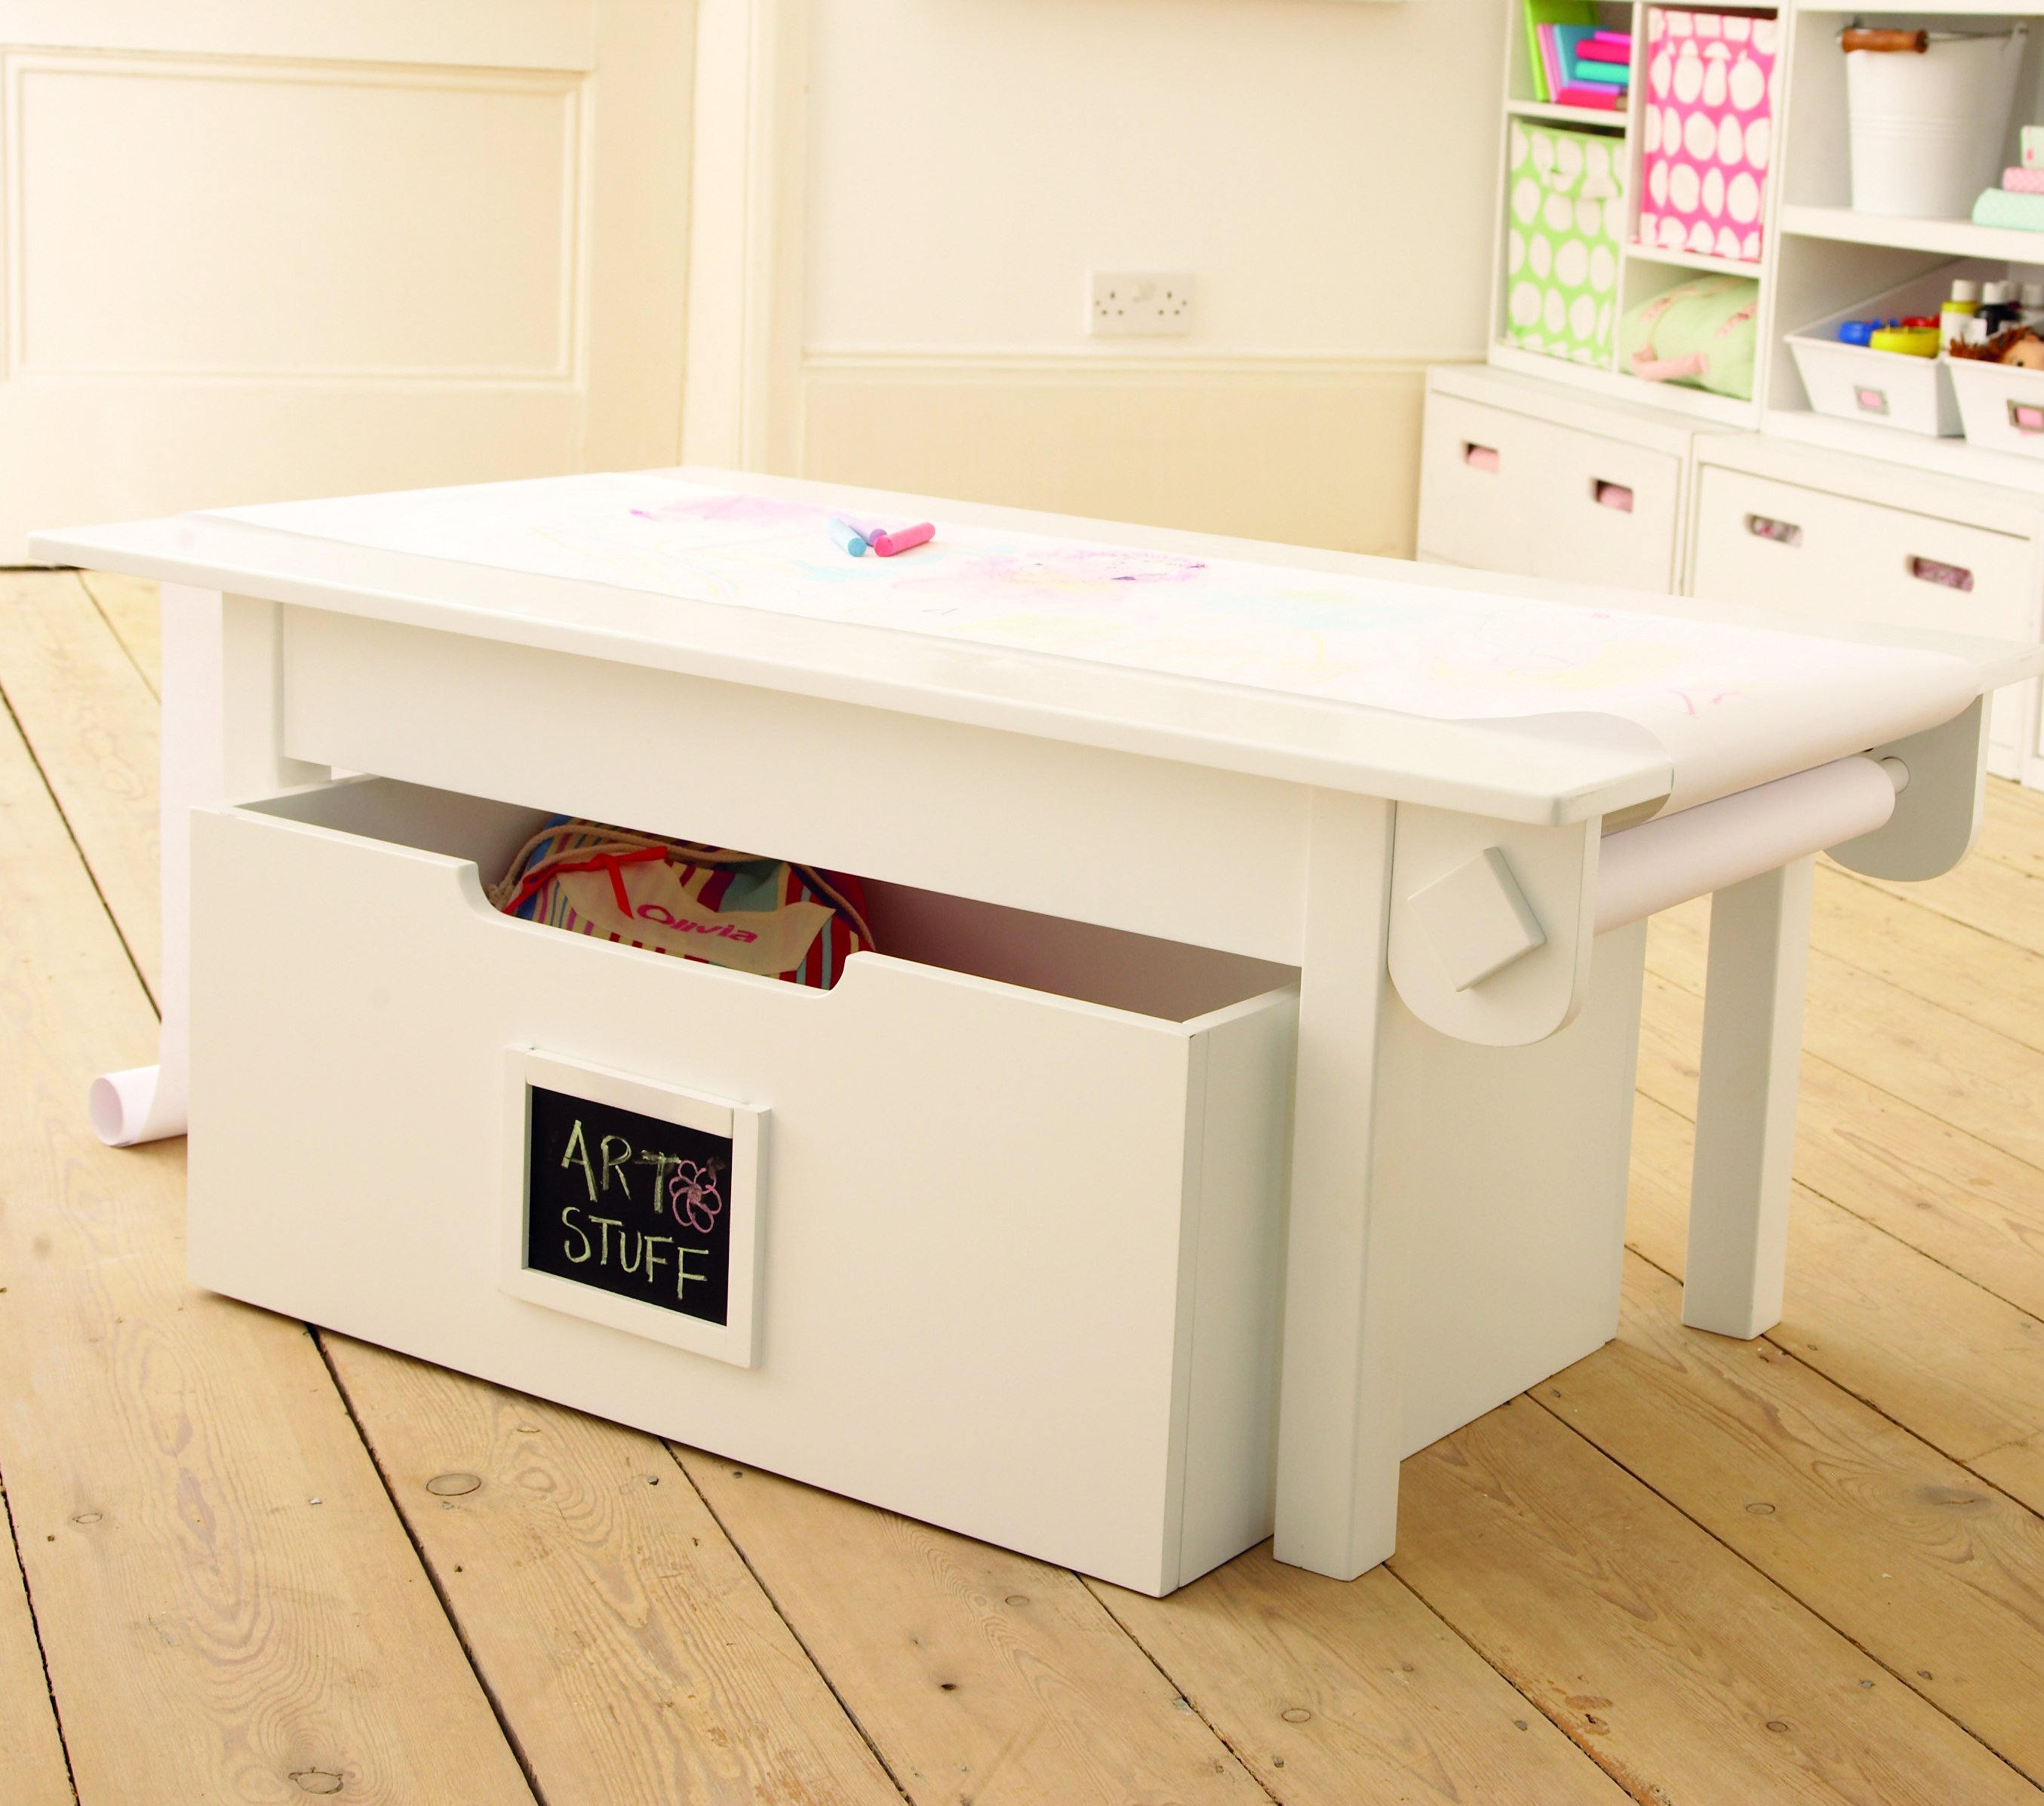 Activity Playtable with